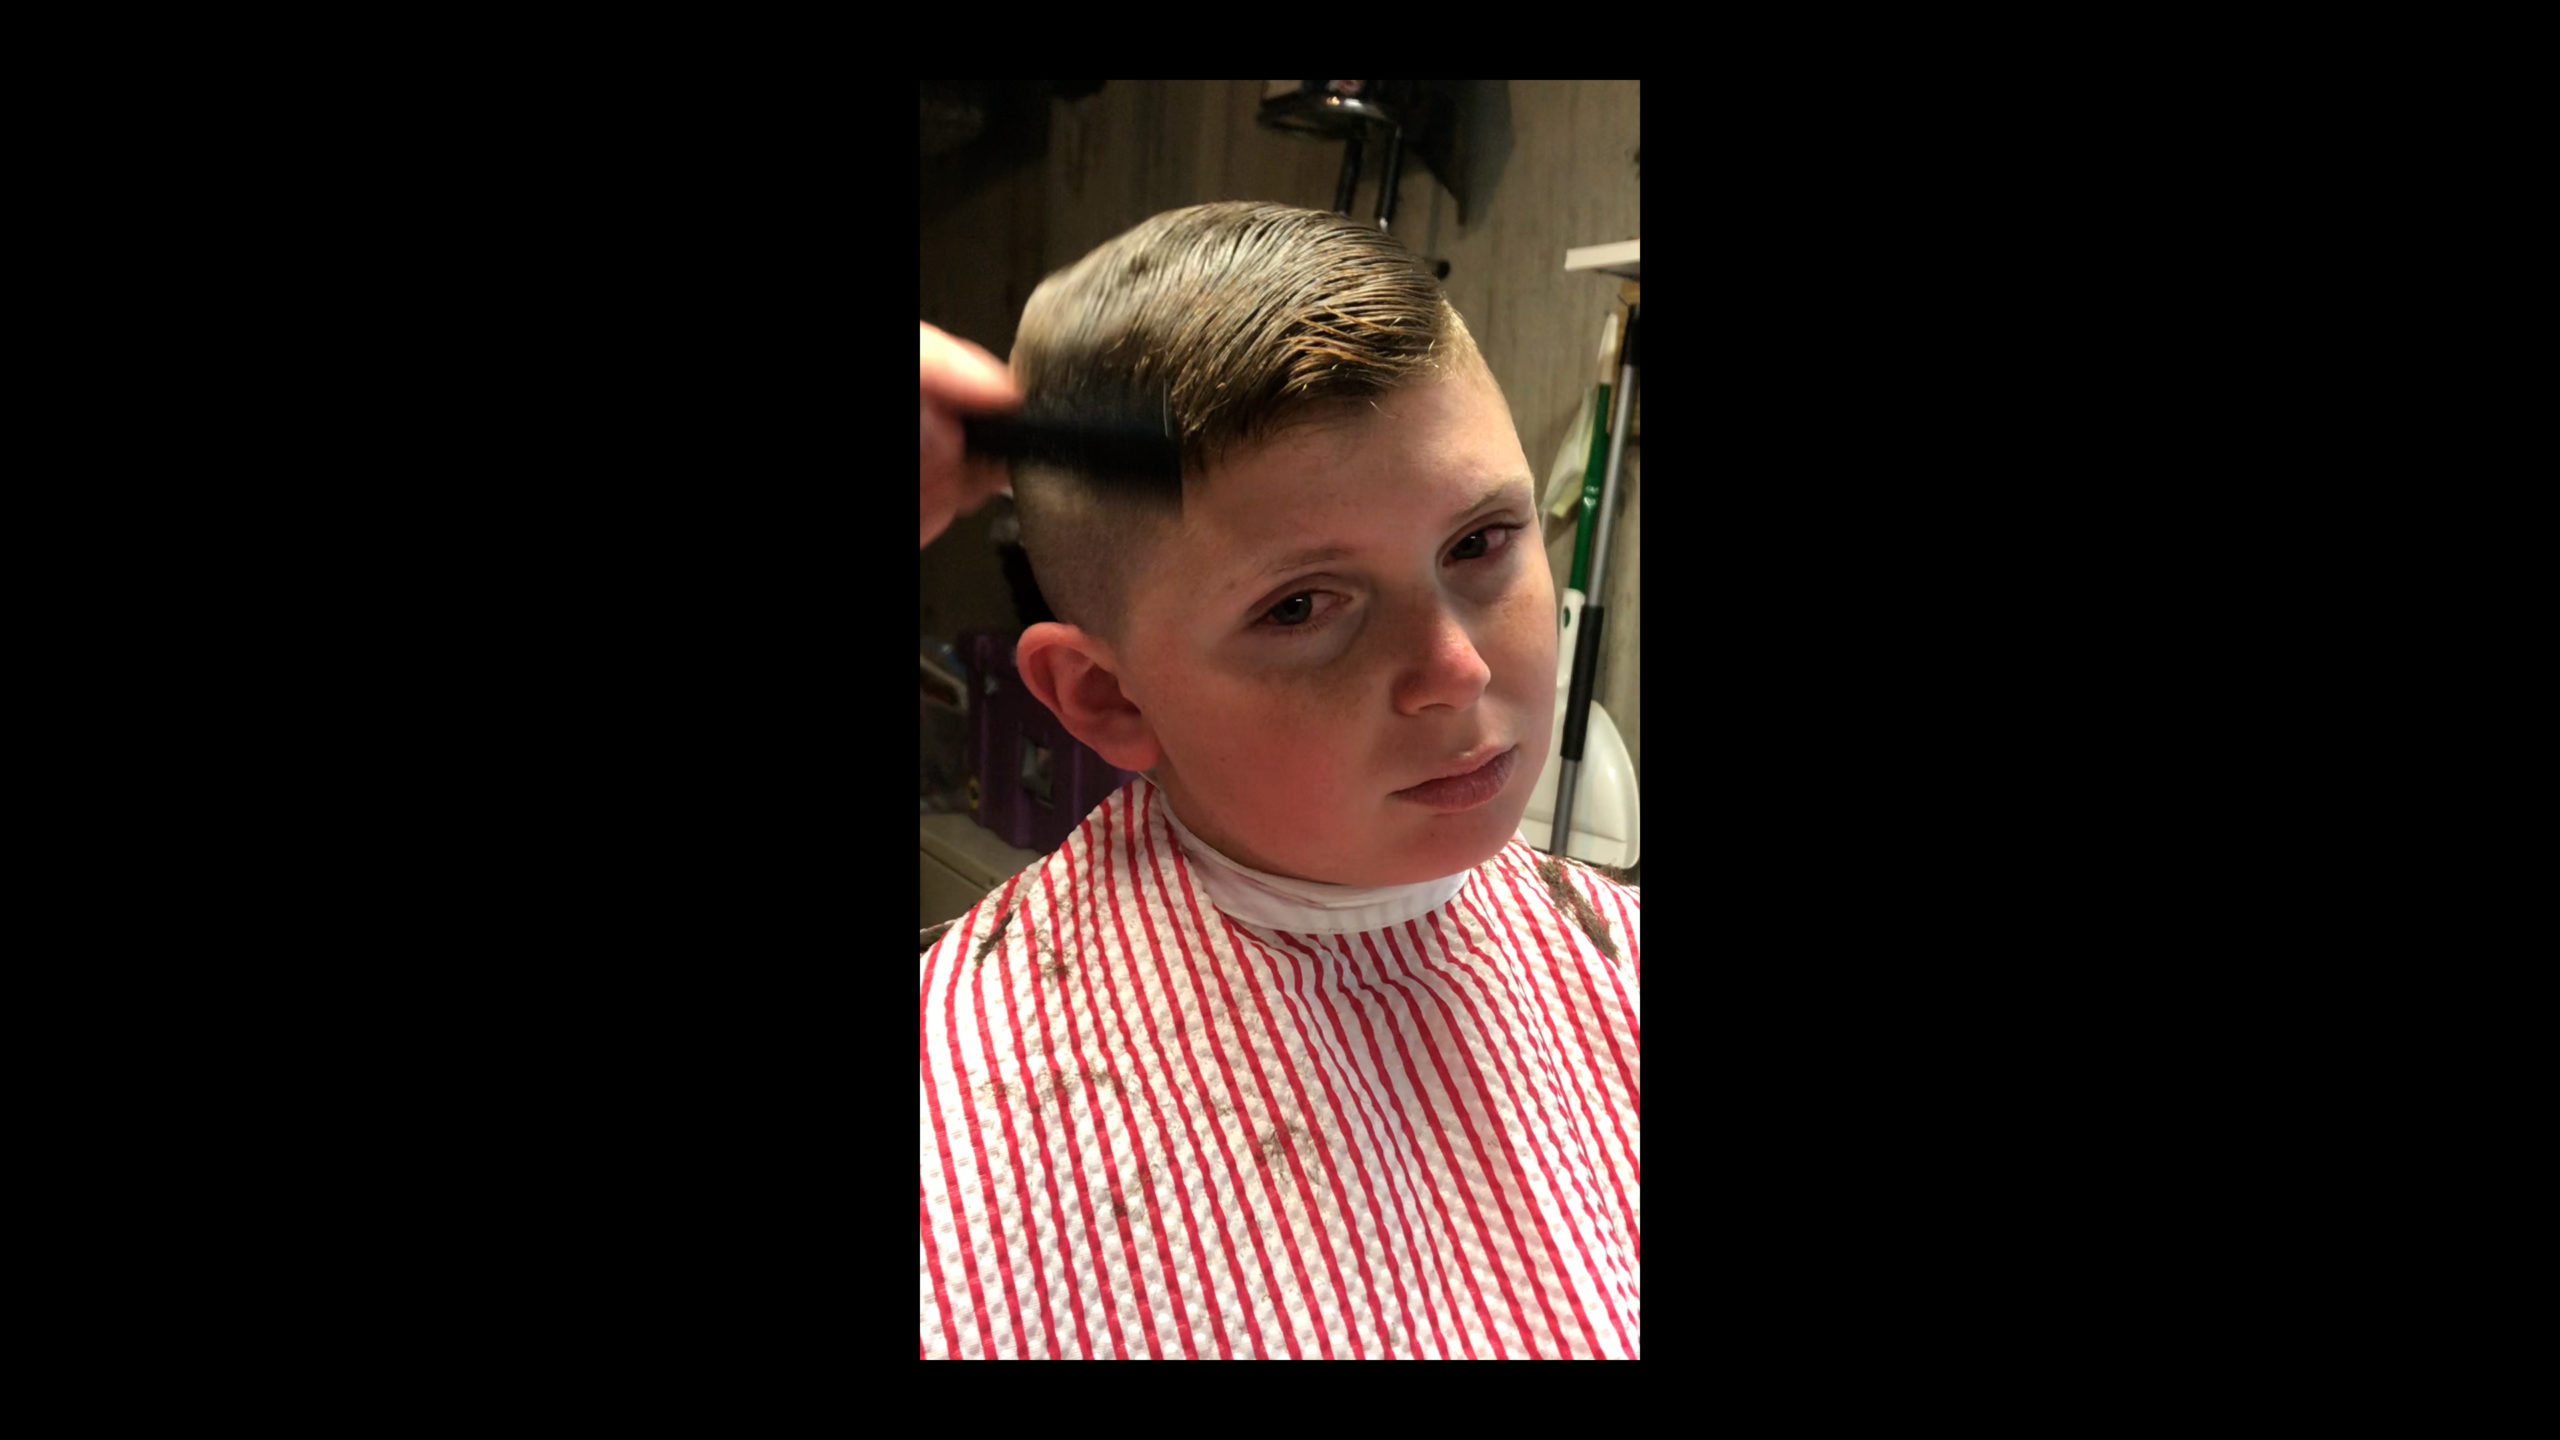 Nick Mazzeo gives a home haircut to Dominic Mazzeo.